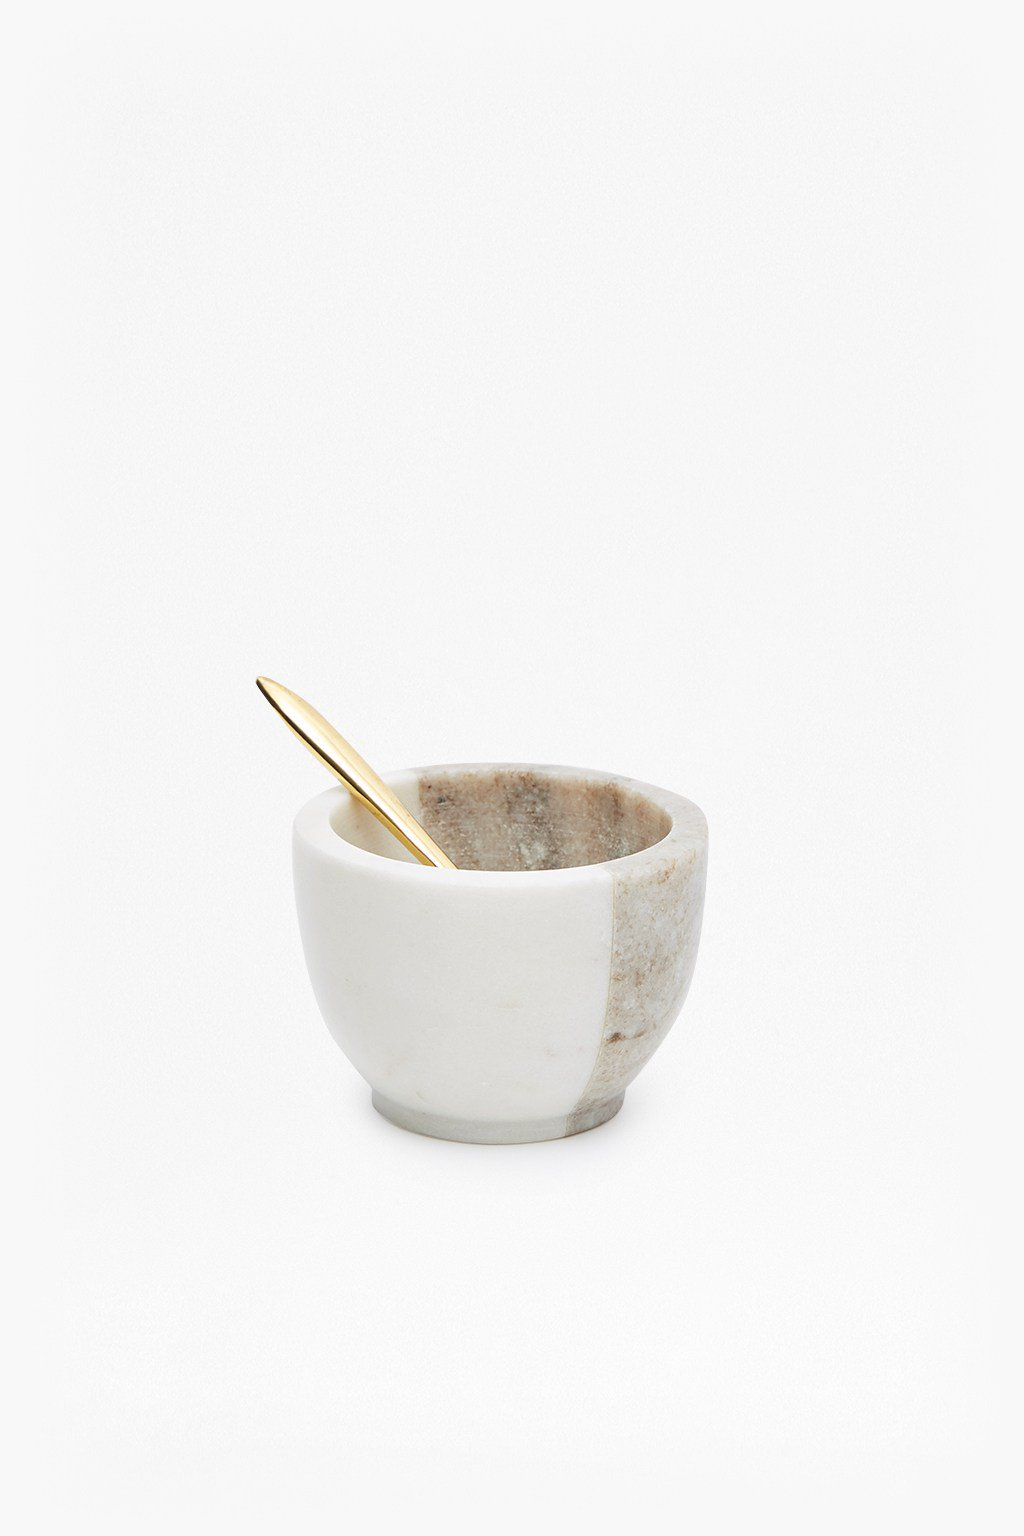 PINCH%2BPOT%2BWITH%2BSPOON16 - WHAT TO BUY NOW - Quelle shock FRENCH CONNECTION